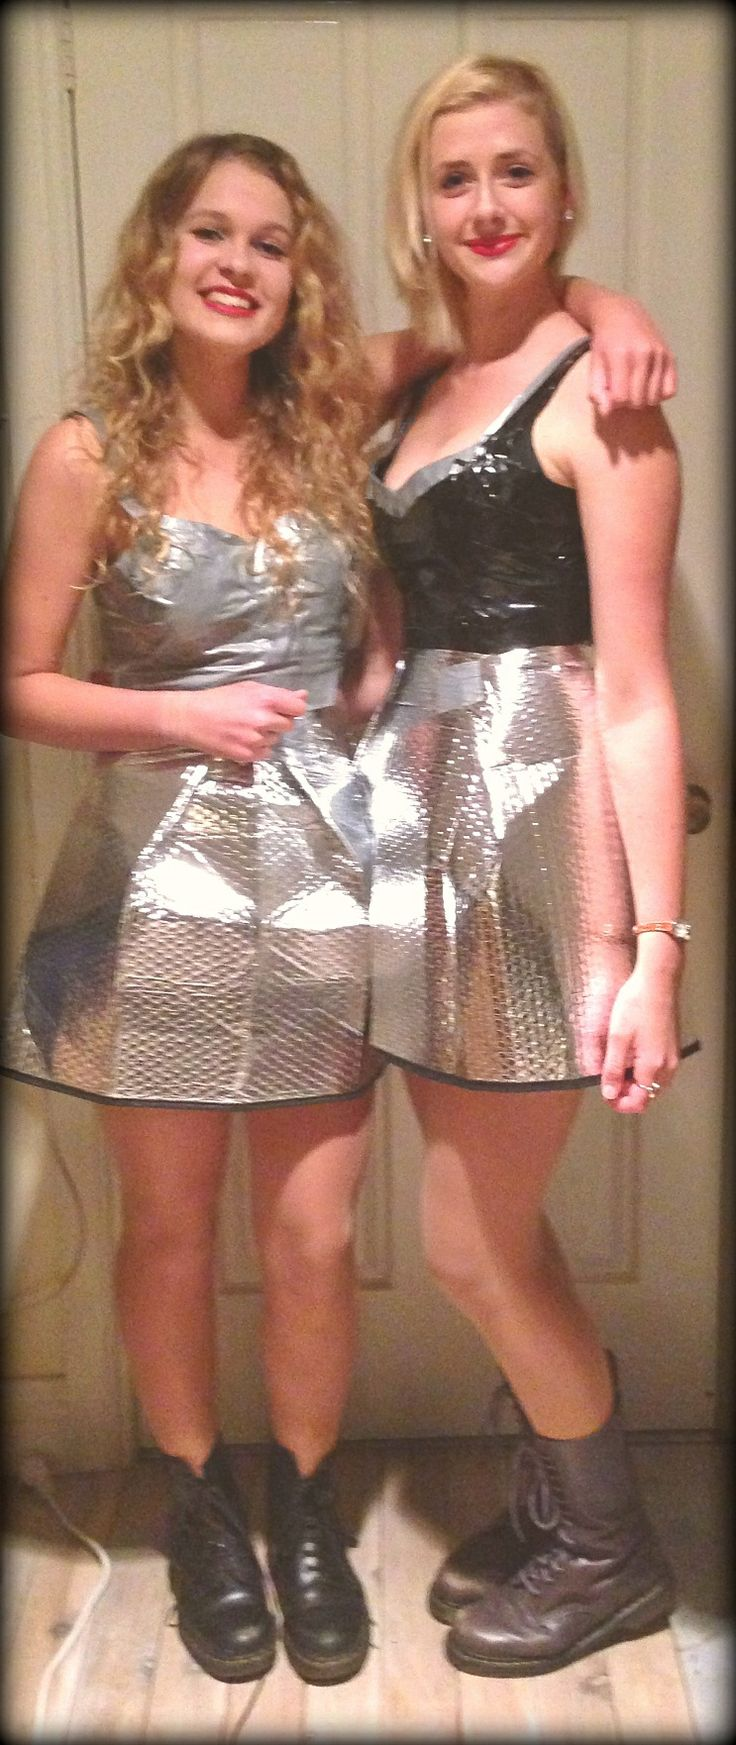 what to wear to an 'anything but clothes' party -> duct tape tops and car dashboard shade skirts! -Lucy